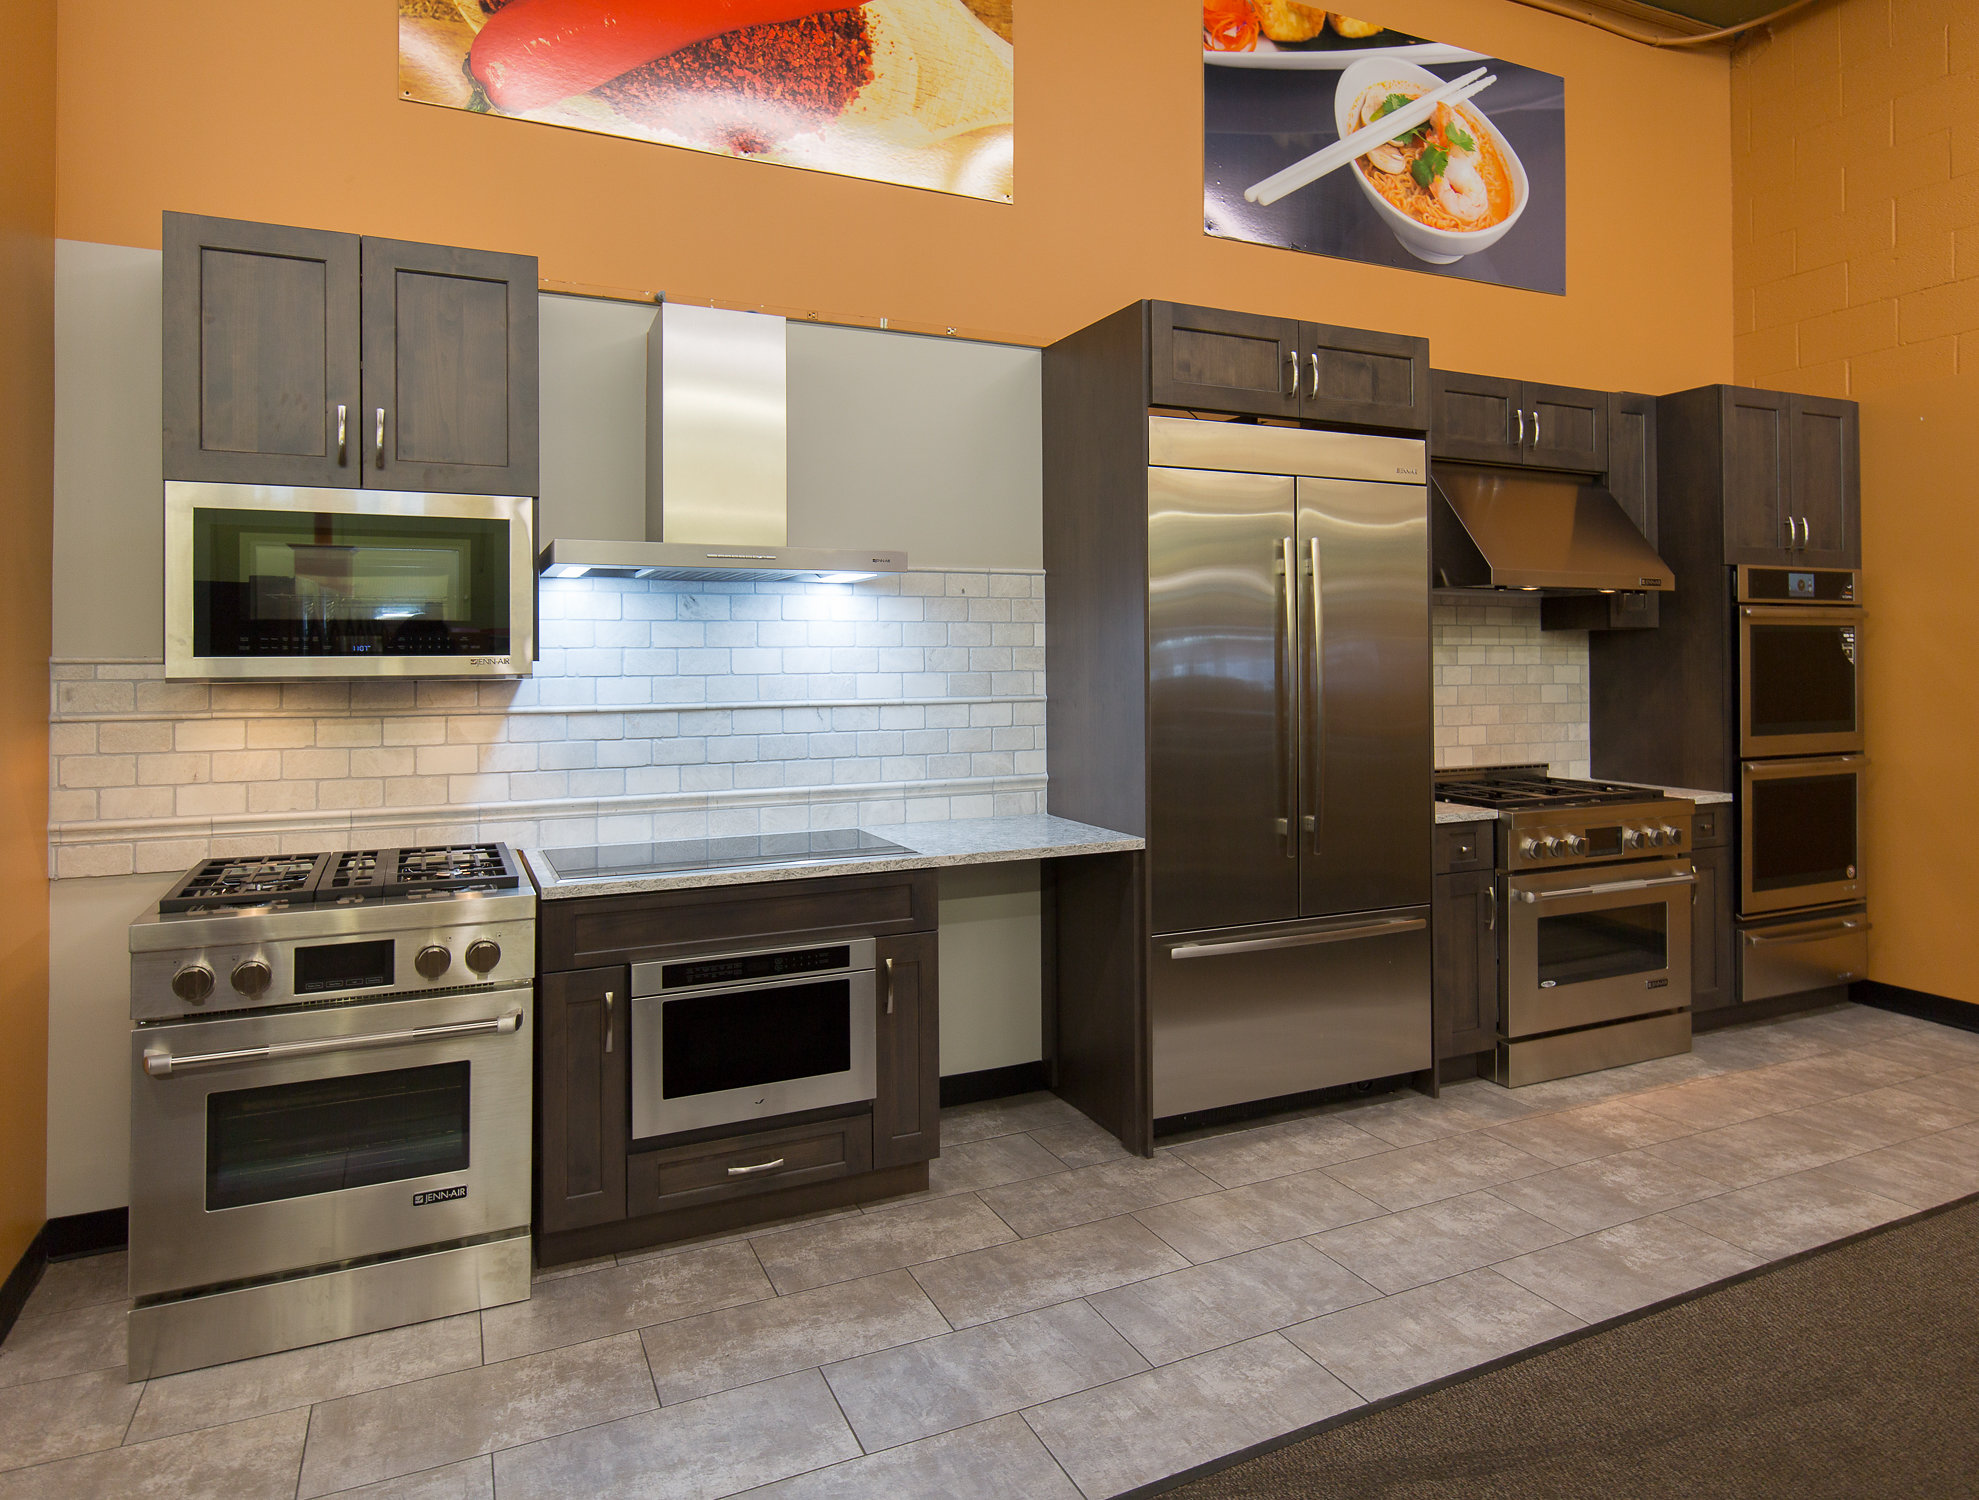 Karl\'s | Home Remodeling Contractors Fargo, ND | Accent Kitchen & Bath